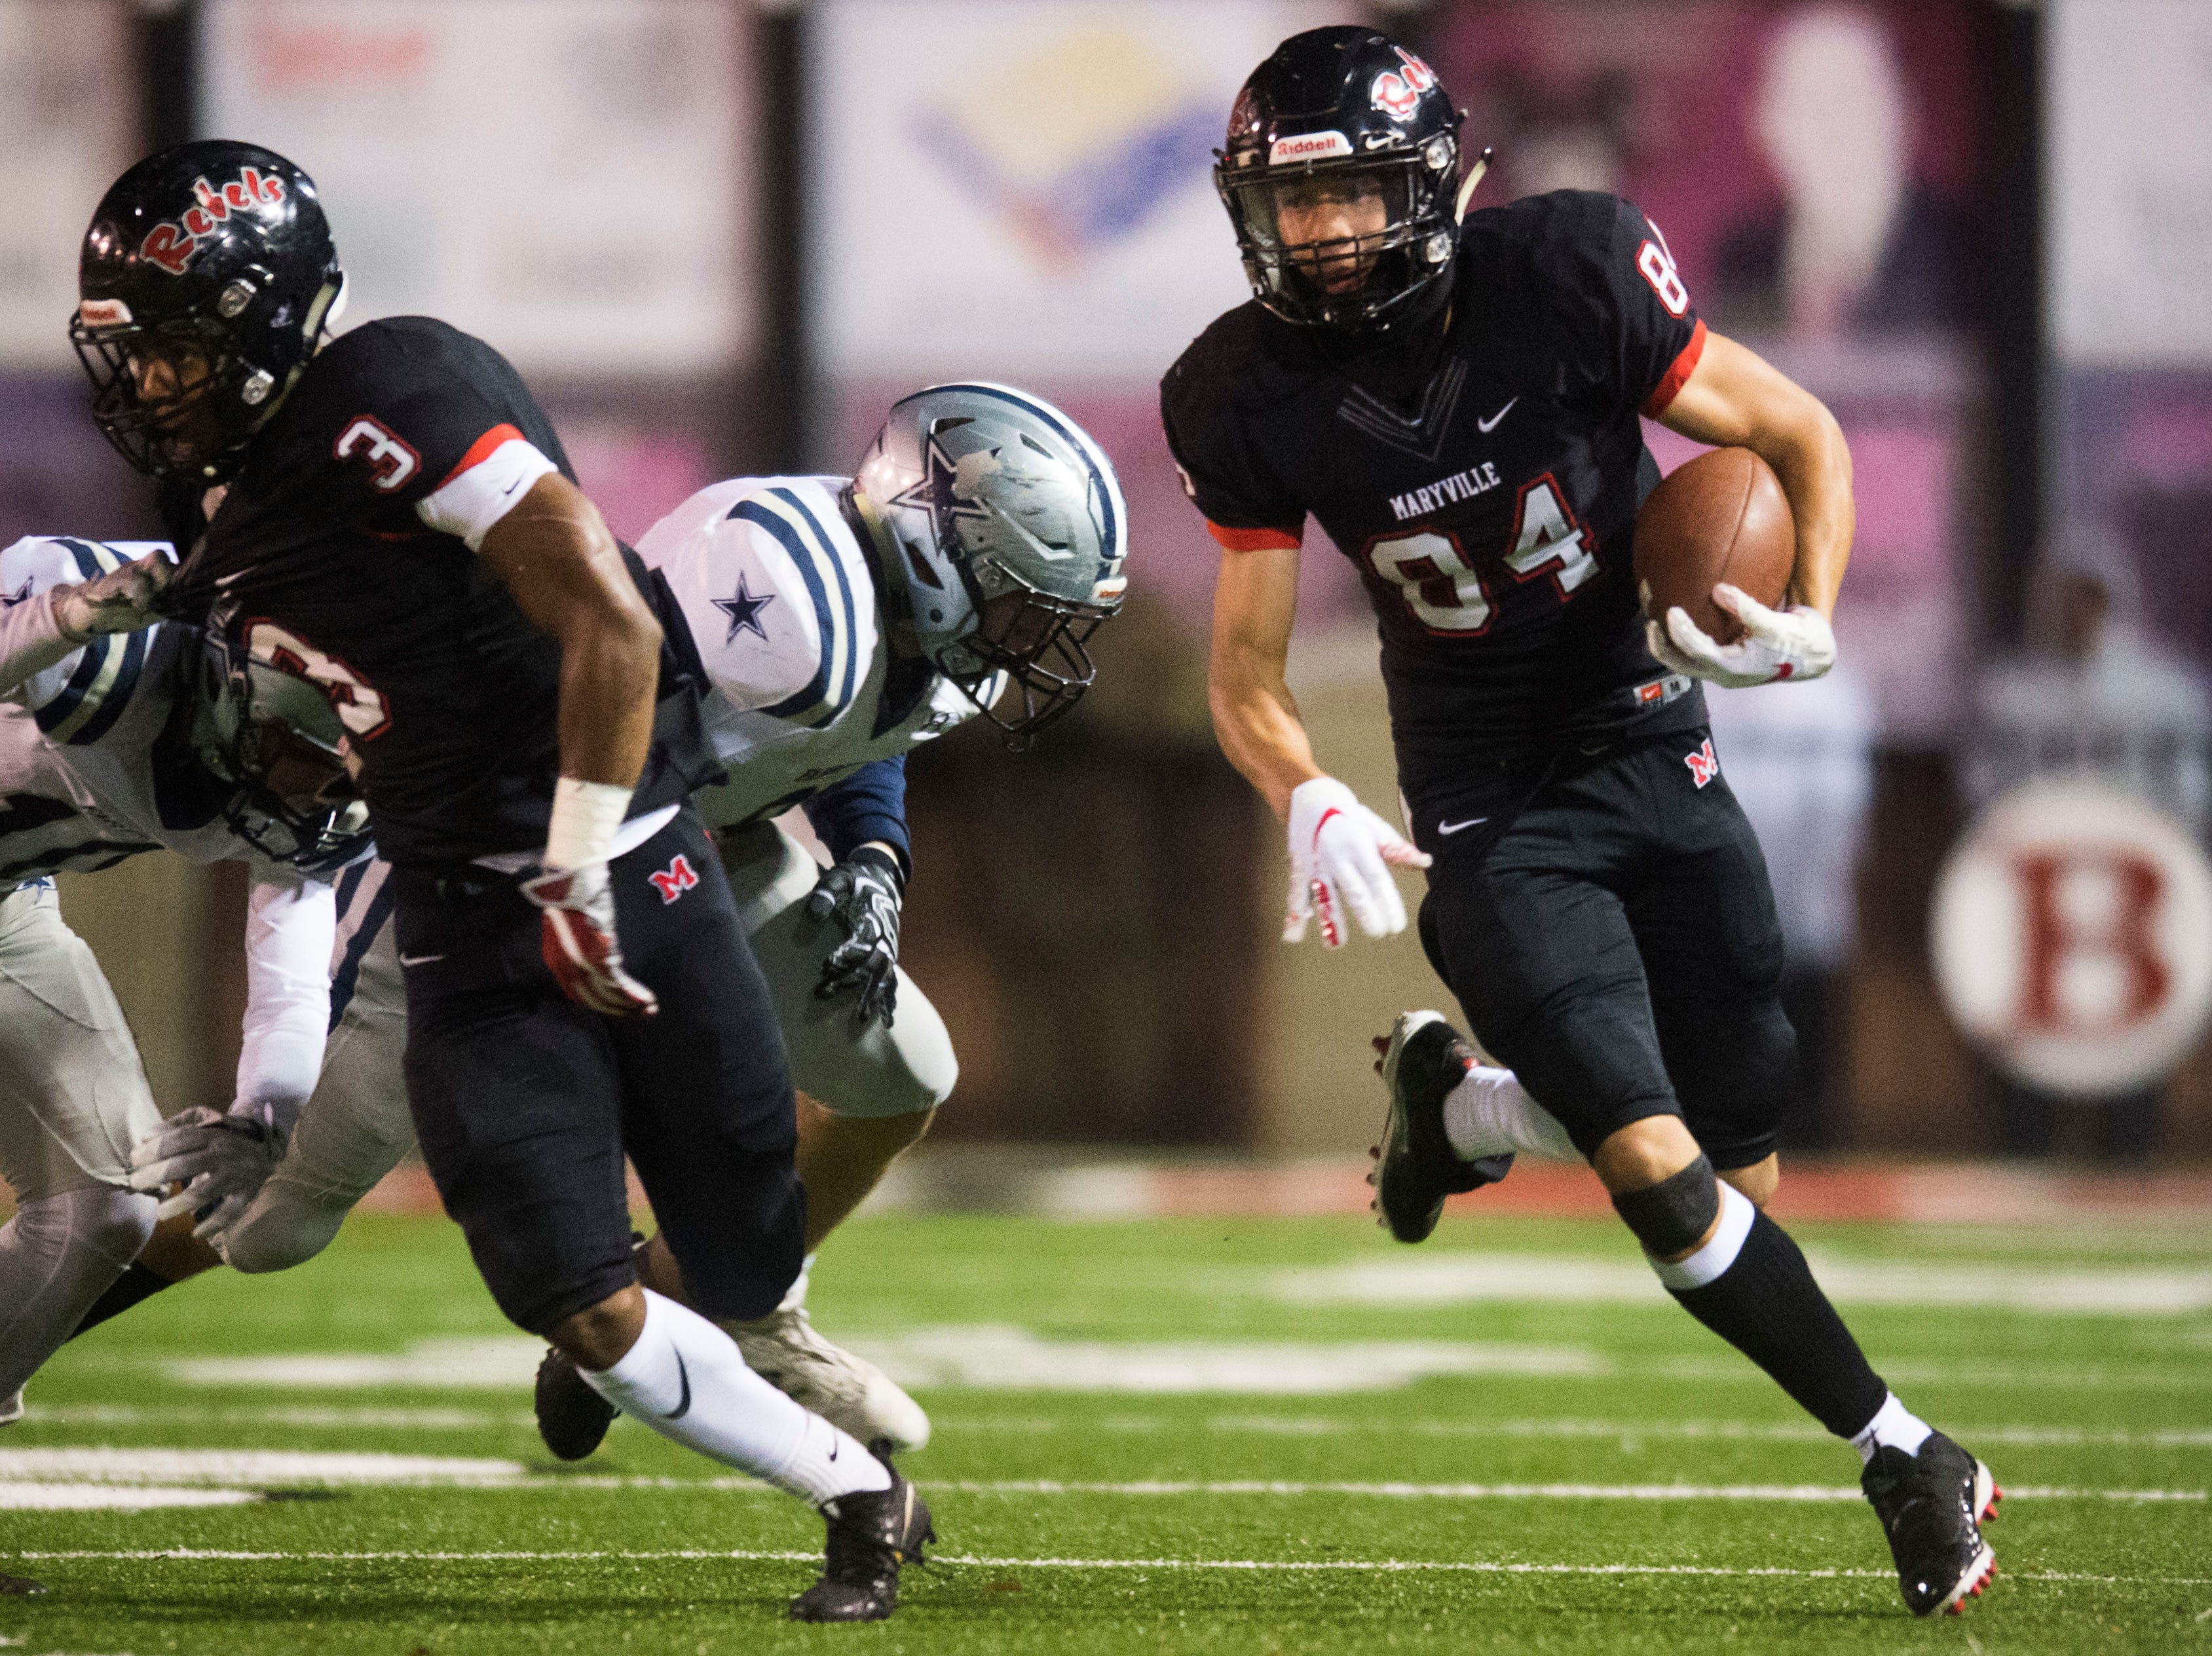 Maryville's Brayden Anderson (84) runs the ball during a 6A quarterfinal game between Maryville and Farragut at Maryville Friday, Nov. 16, 2018. Maryville defeated Farragut 26-10.